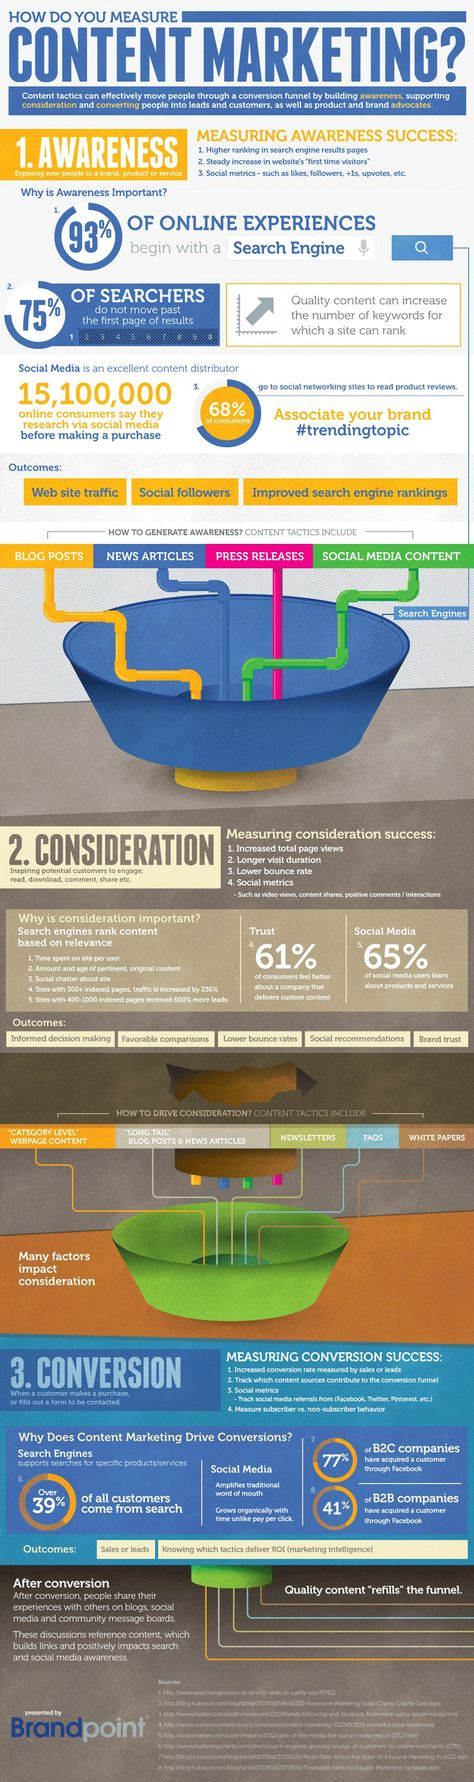 Measuring Your Content Marketing Success [INFOGRAPHIC]